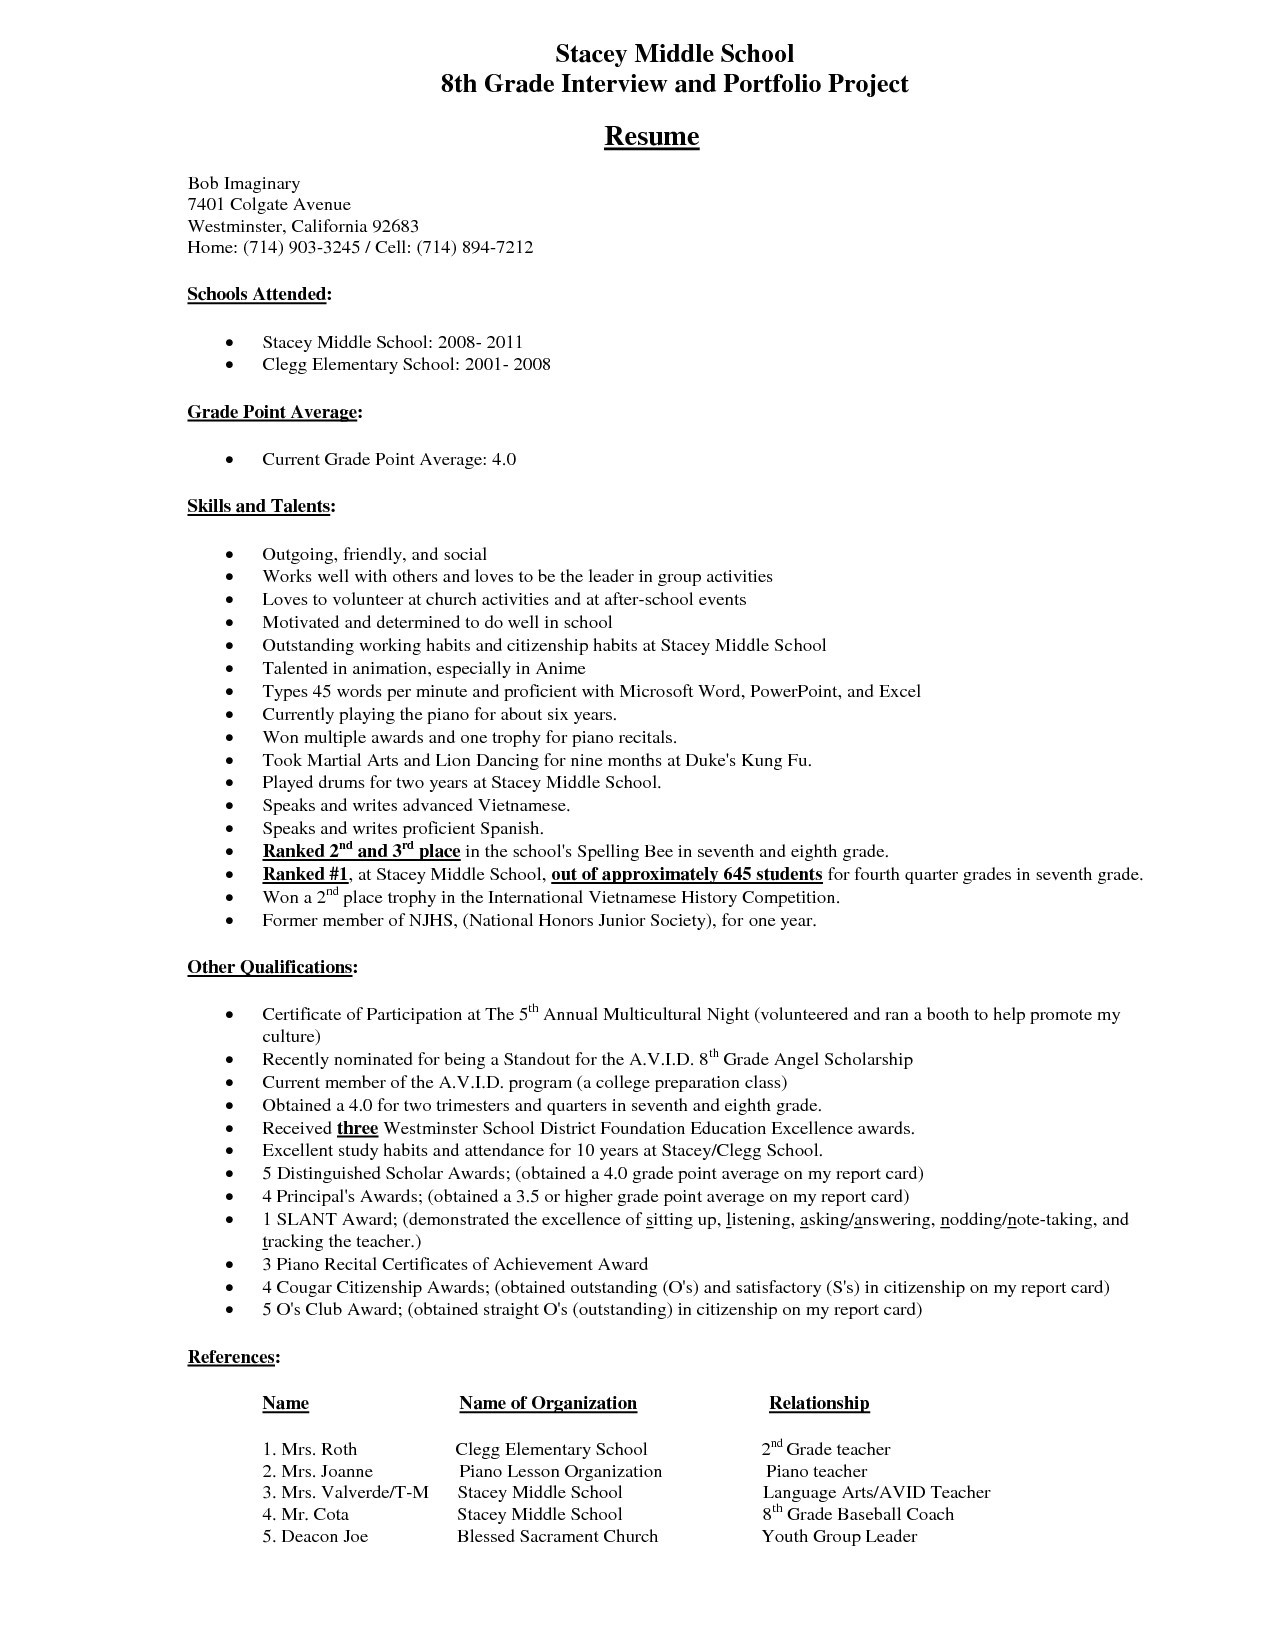 Sample Resume for Middle School Students Junior High School Student Resume